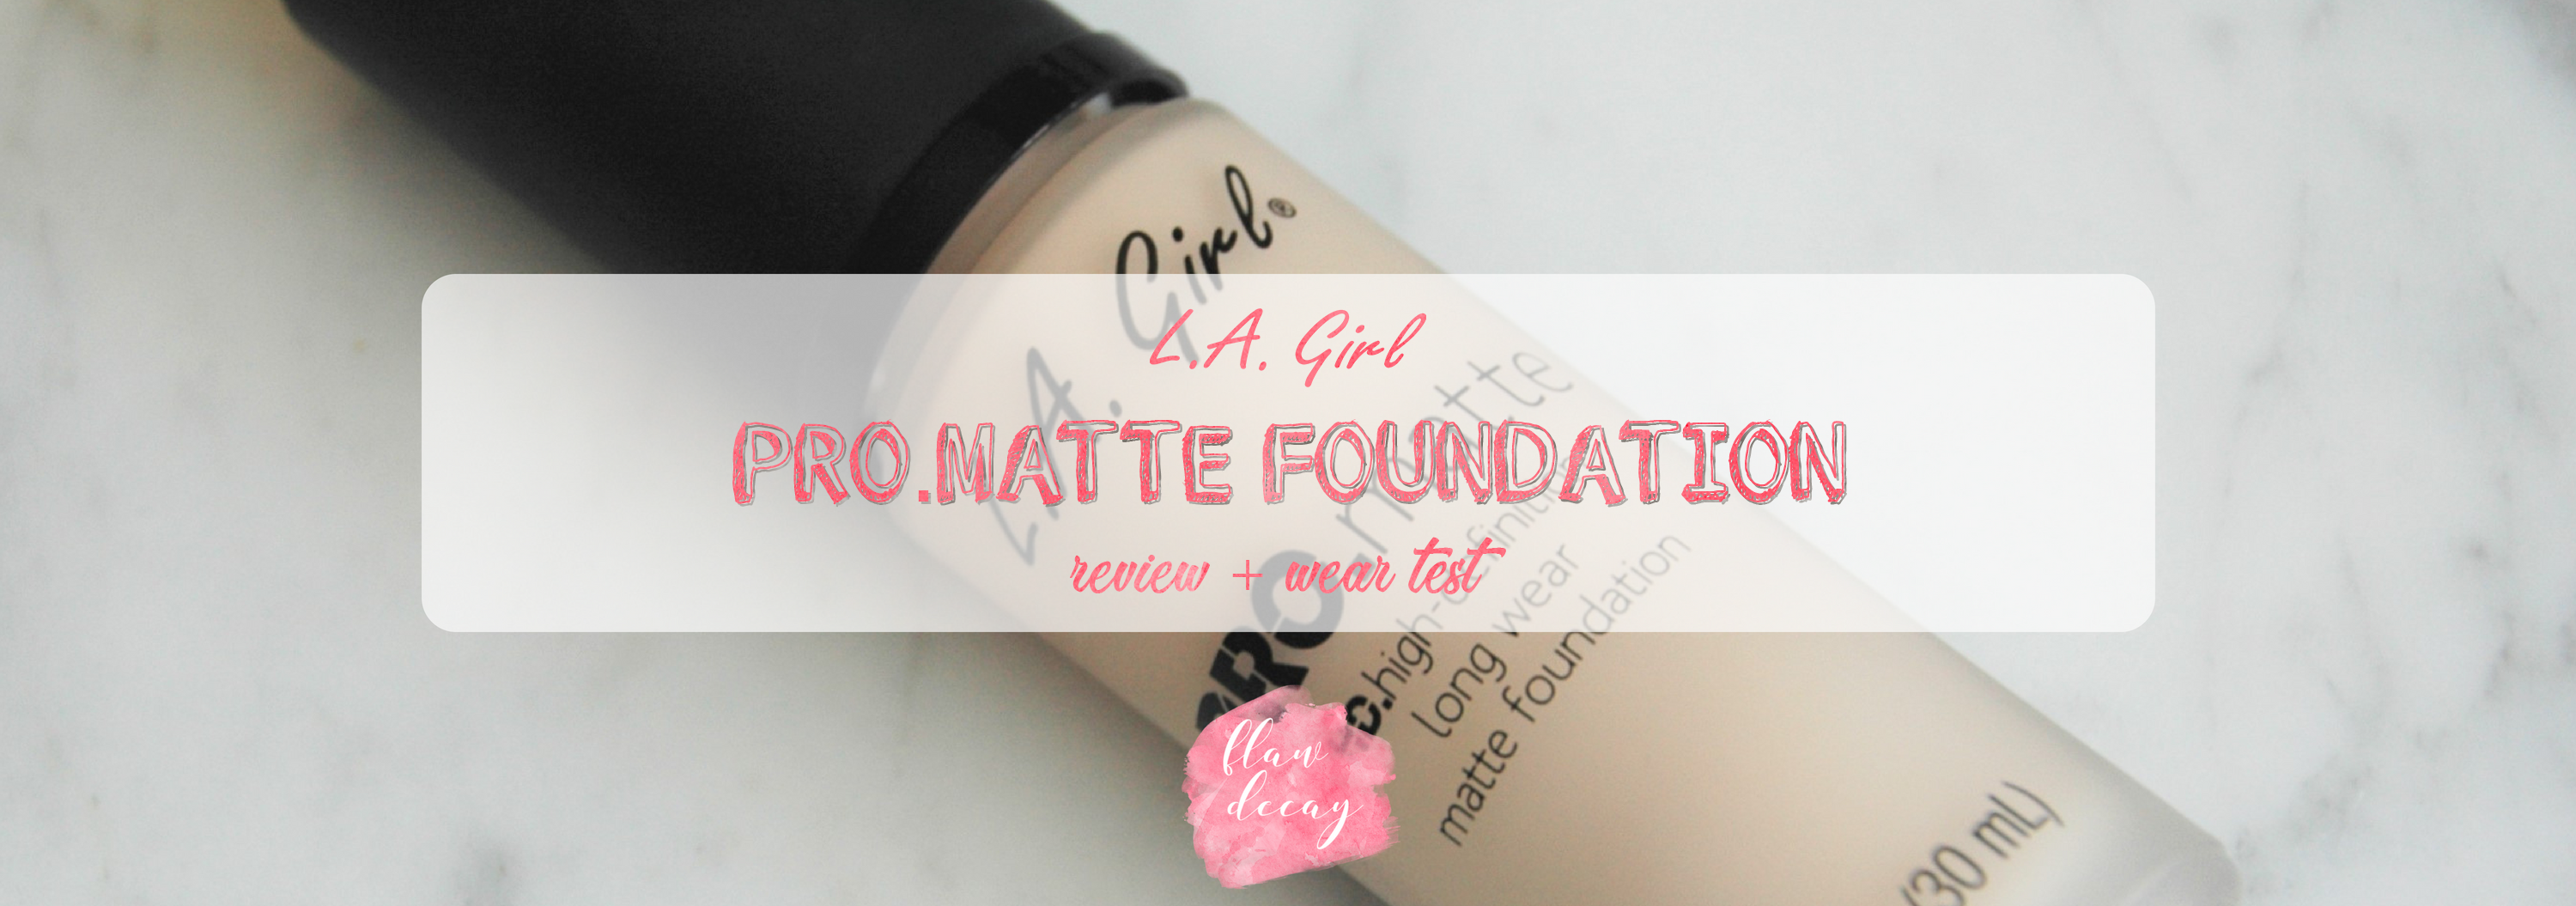 PRO Matte Foundation – LA Girl (Review + 9h Wear Test)